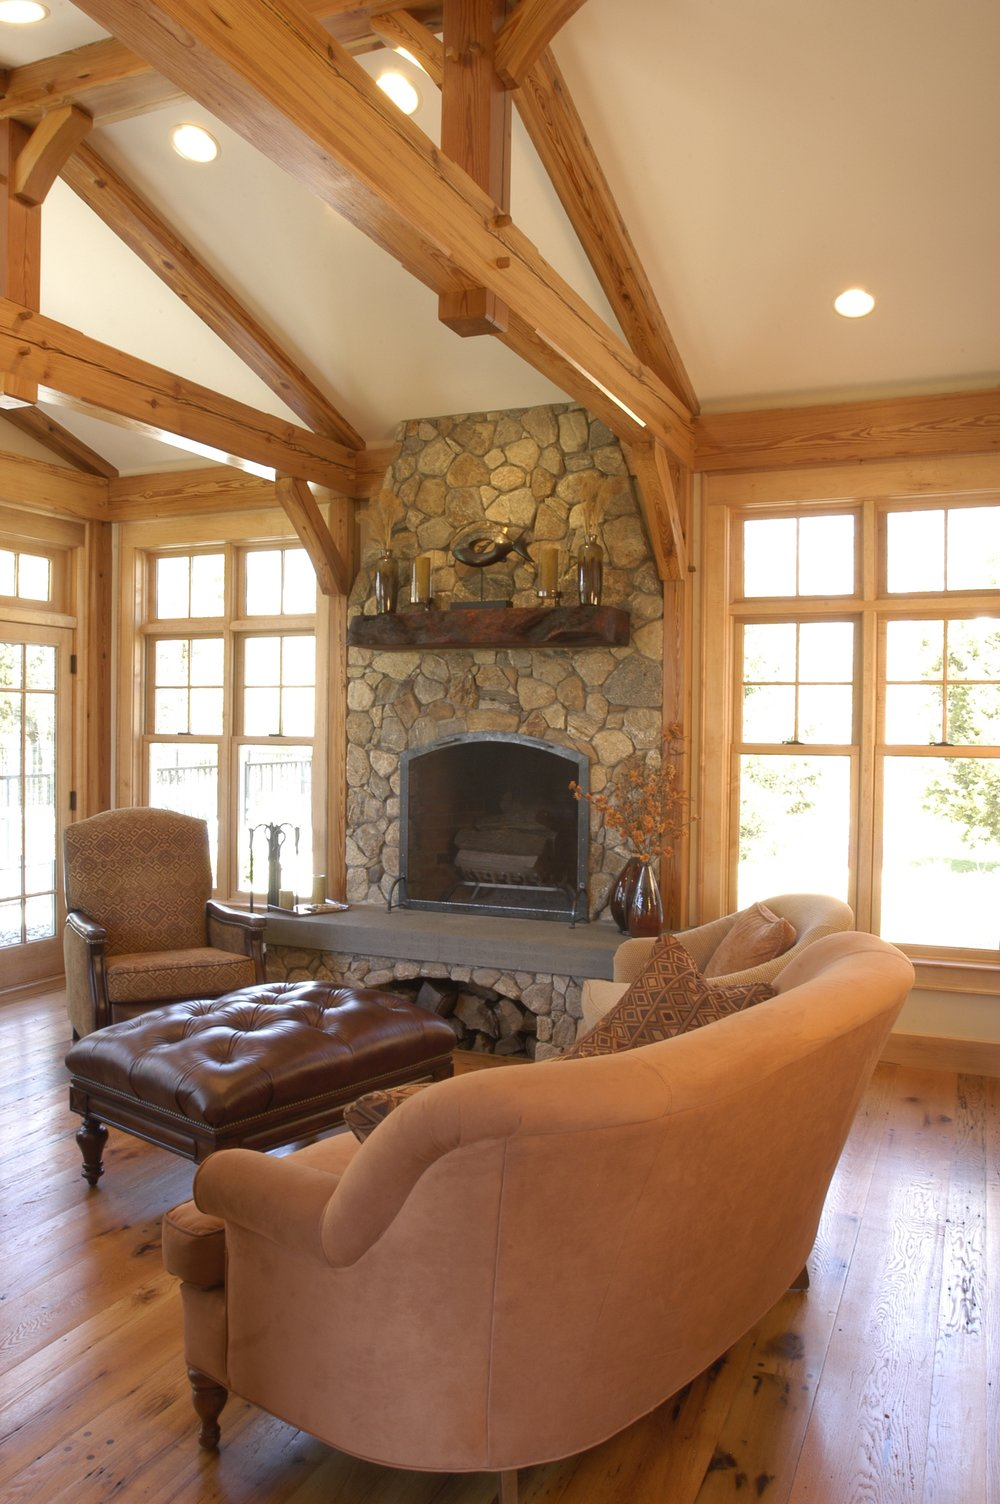 The Family Room features heavy timber framing built from recycled  timbers, hand pegged. The tall windows with transoms above flood the  space with light.